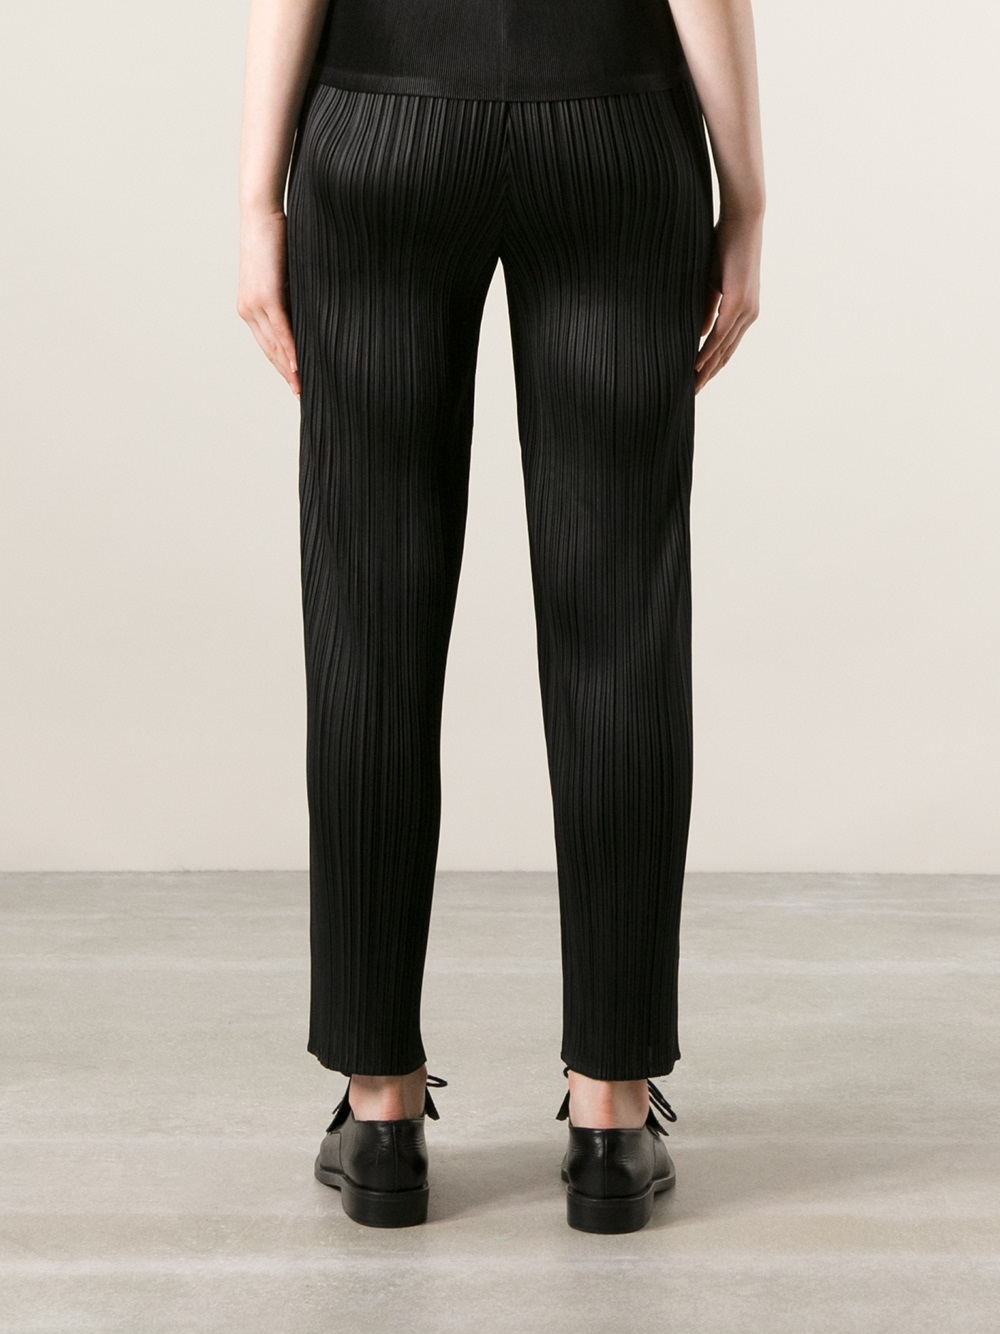 057404629836 Lyst - Pleats please issey miyake Highwaisted Trousers in .